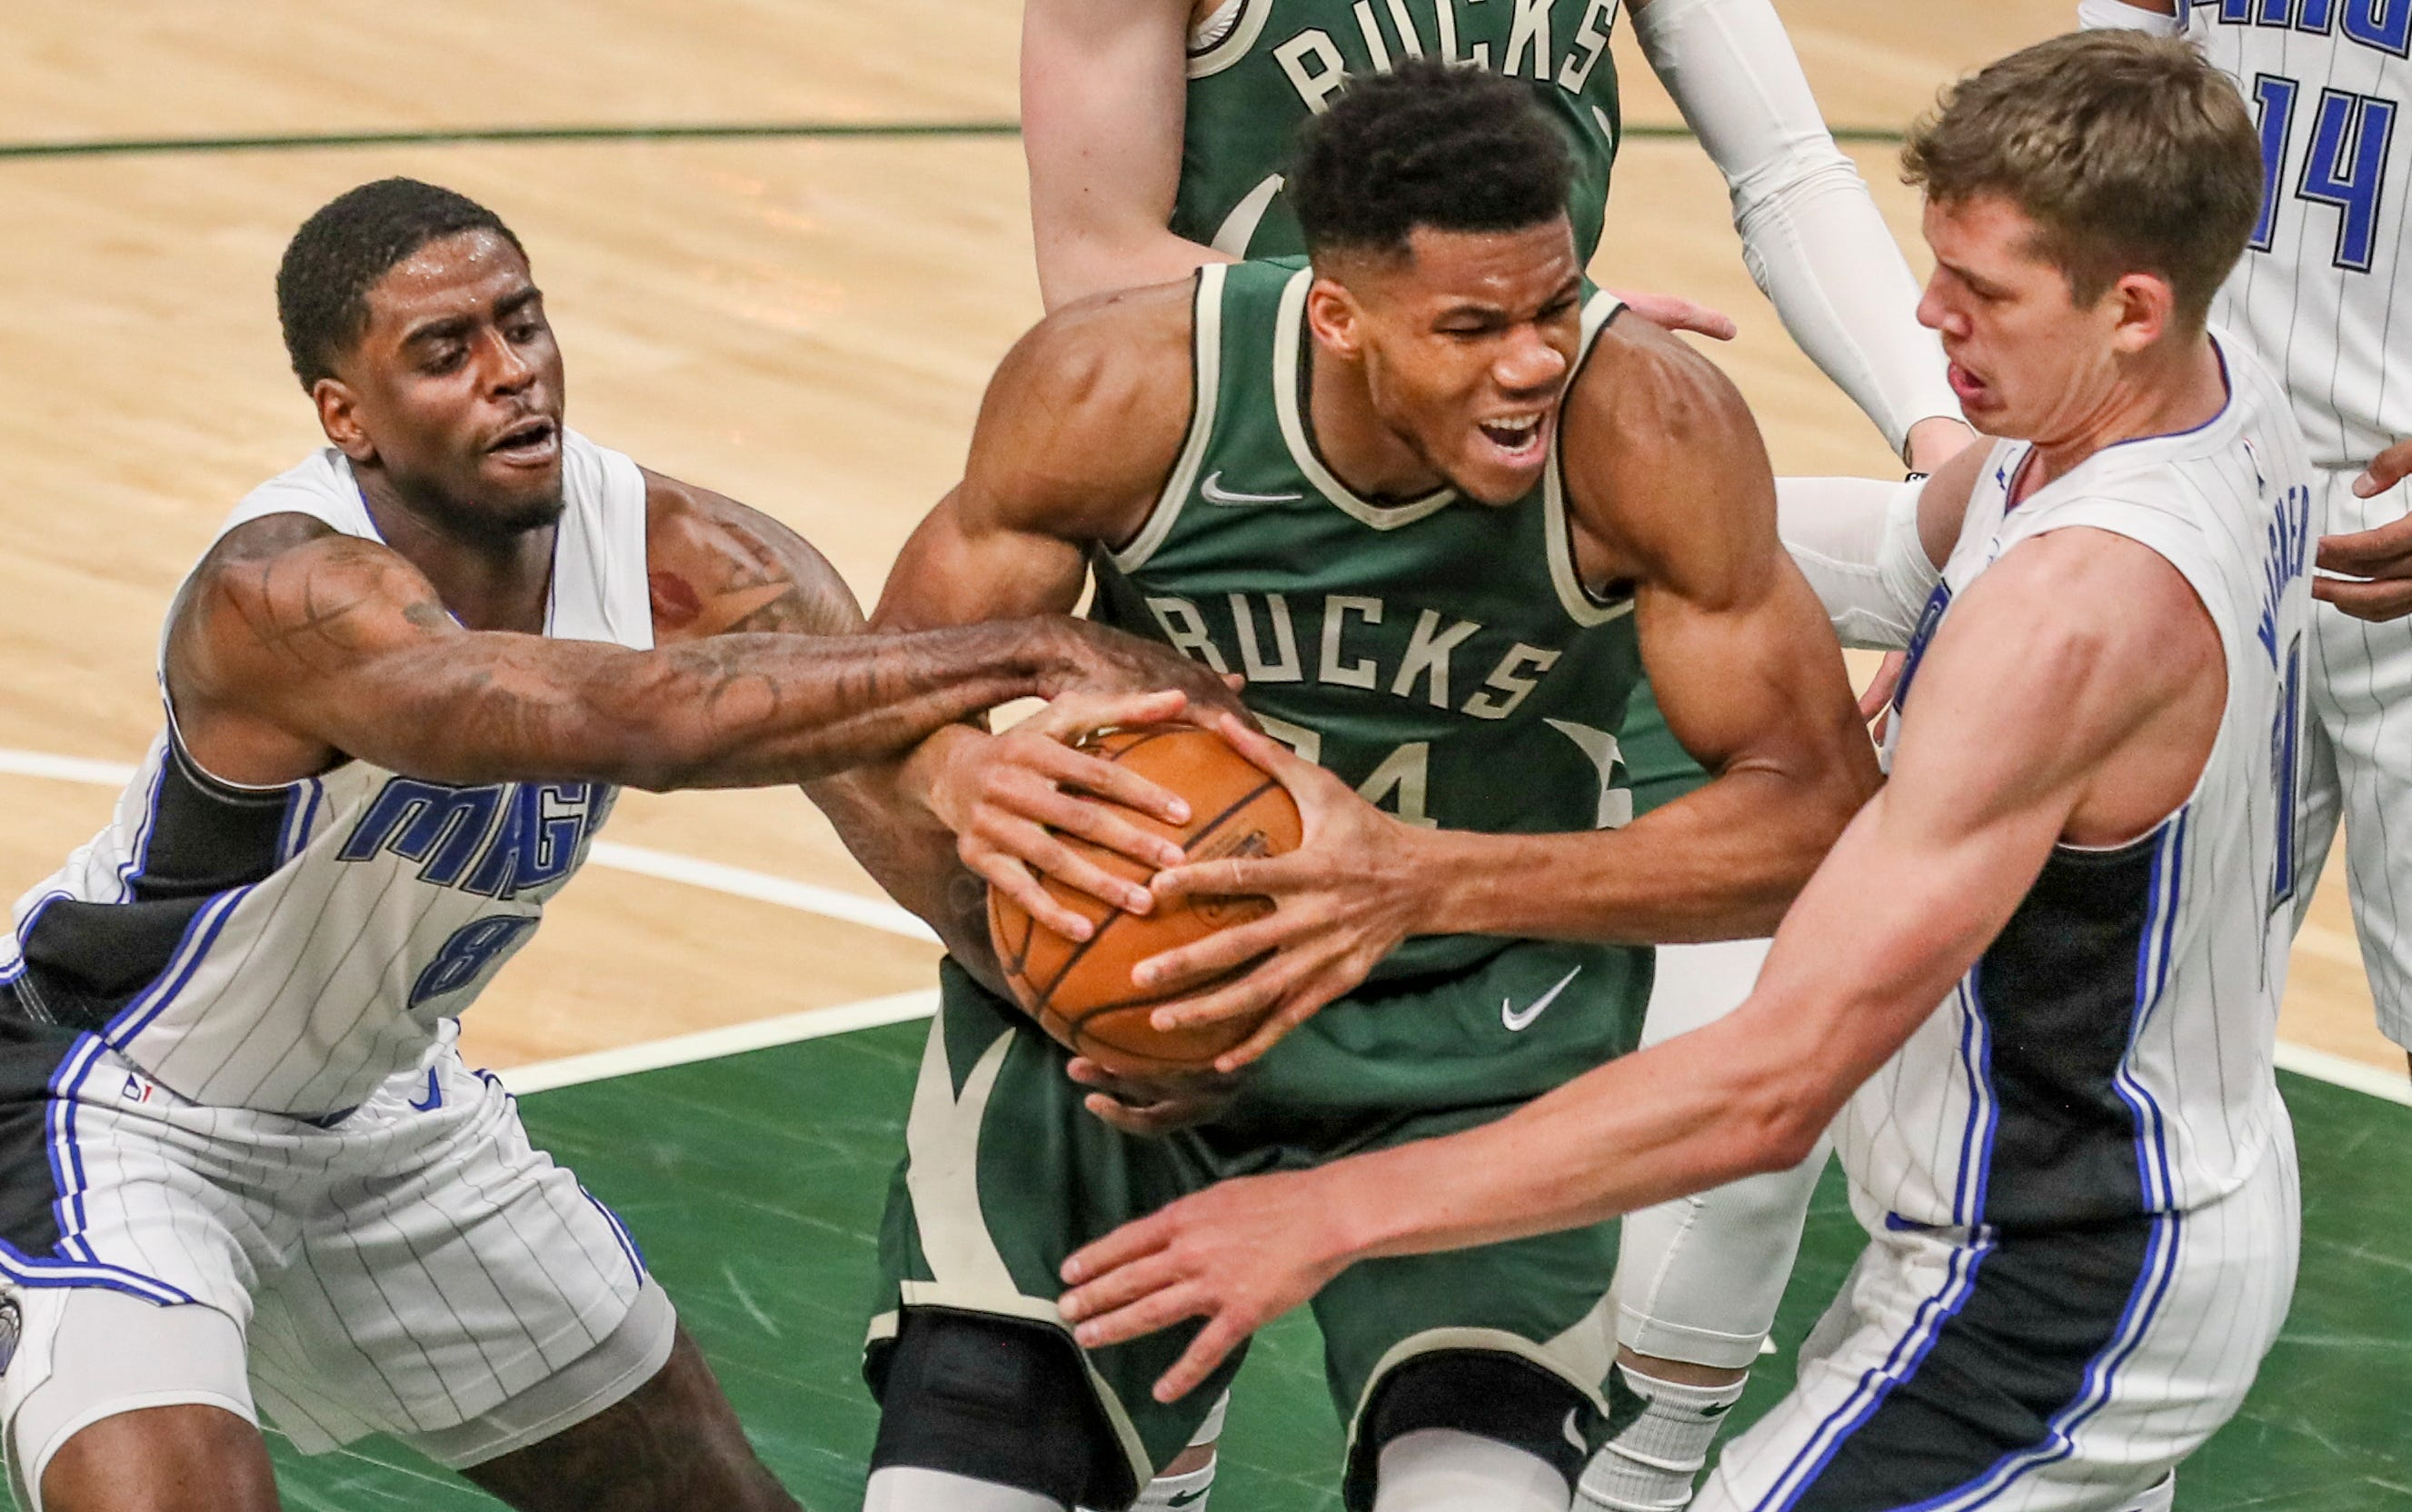 Giannis Antetokounmpo welcomes the Bucks' playoff tests: 'Pressure is earned and I love it'